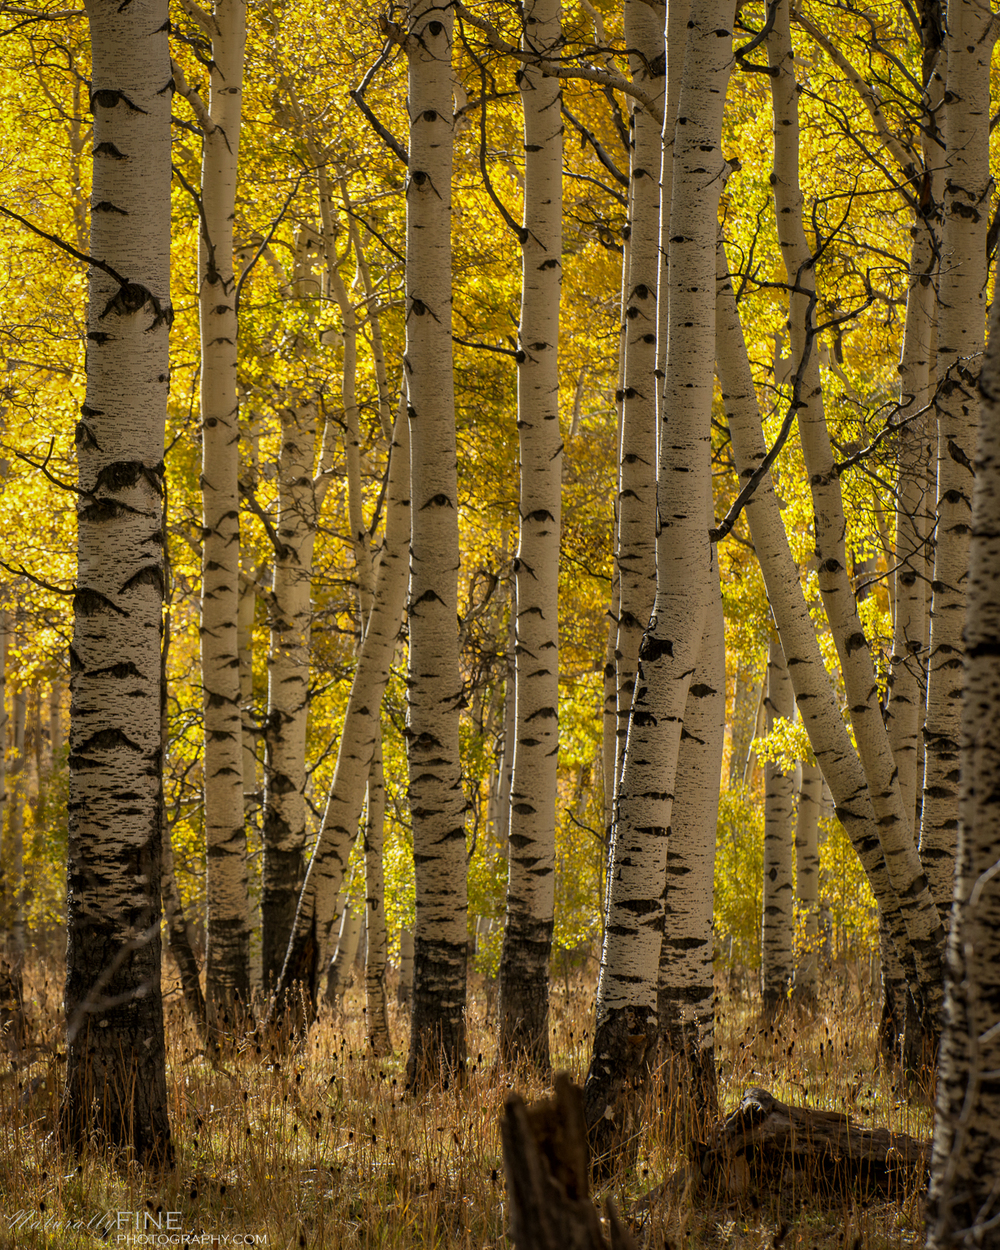 Hundreds of old aspen groves ignite the rolling hills with hues of bright yellow and goldenrod.